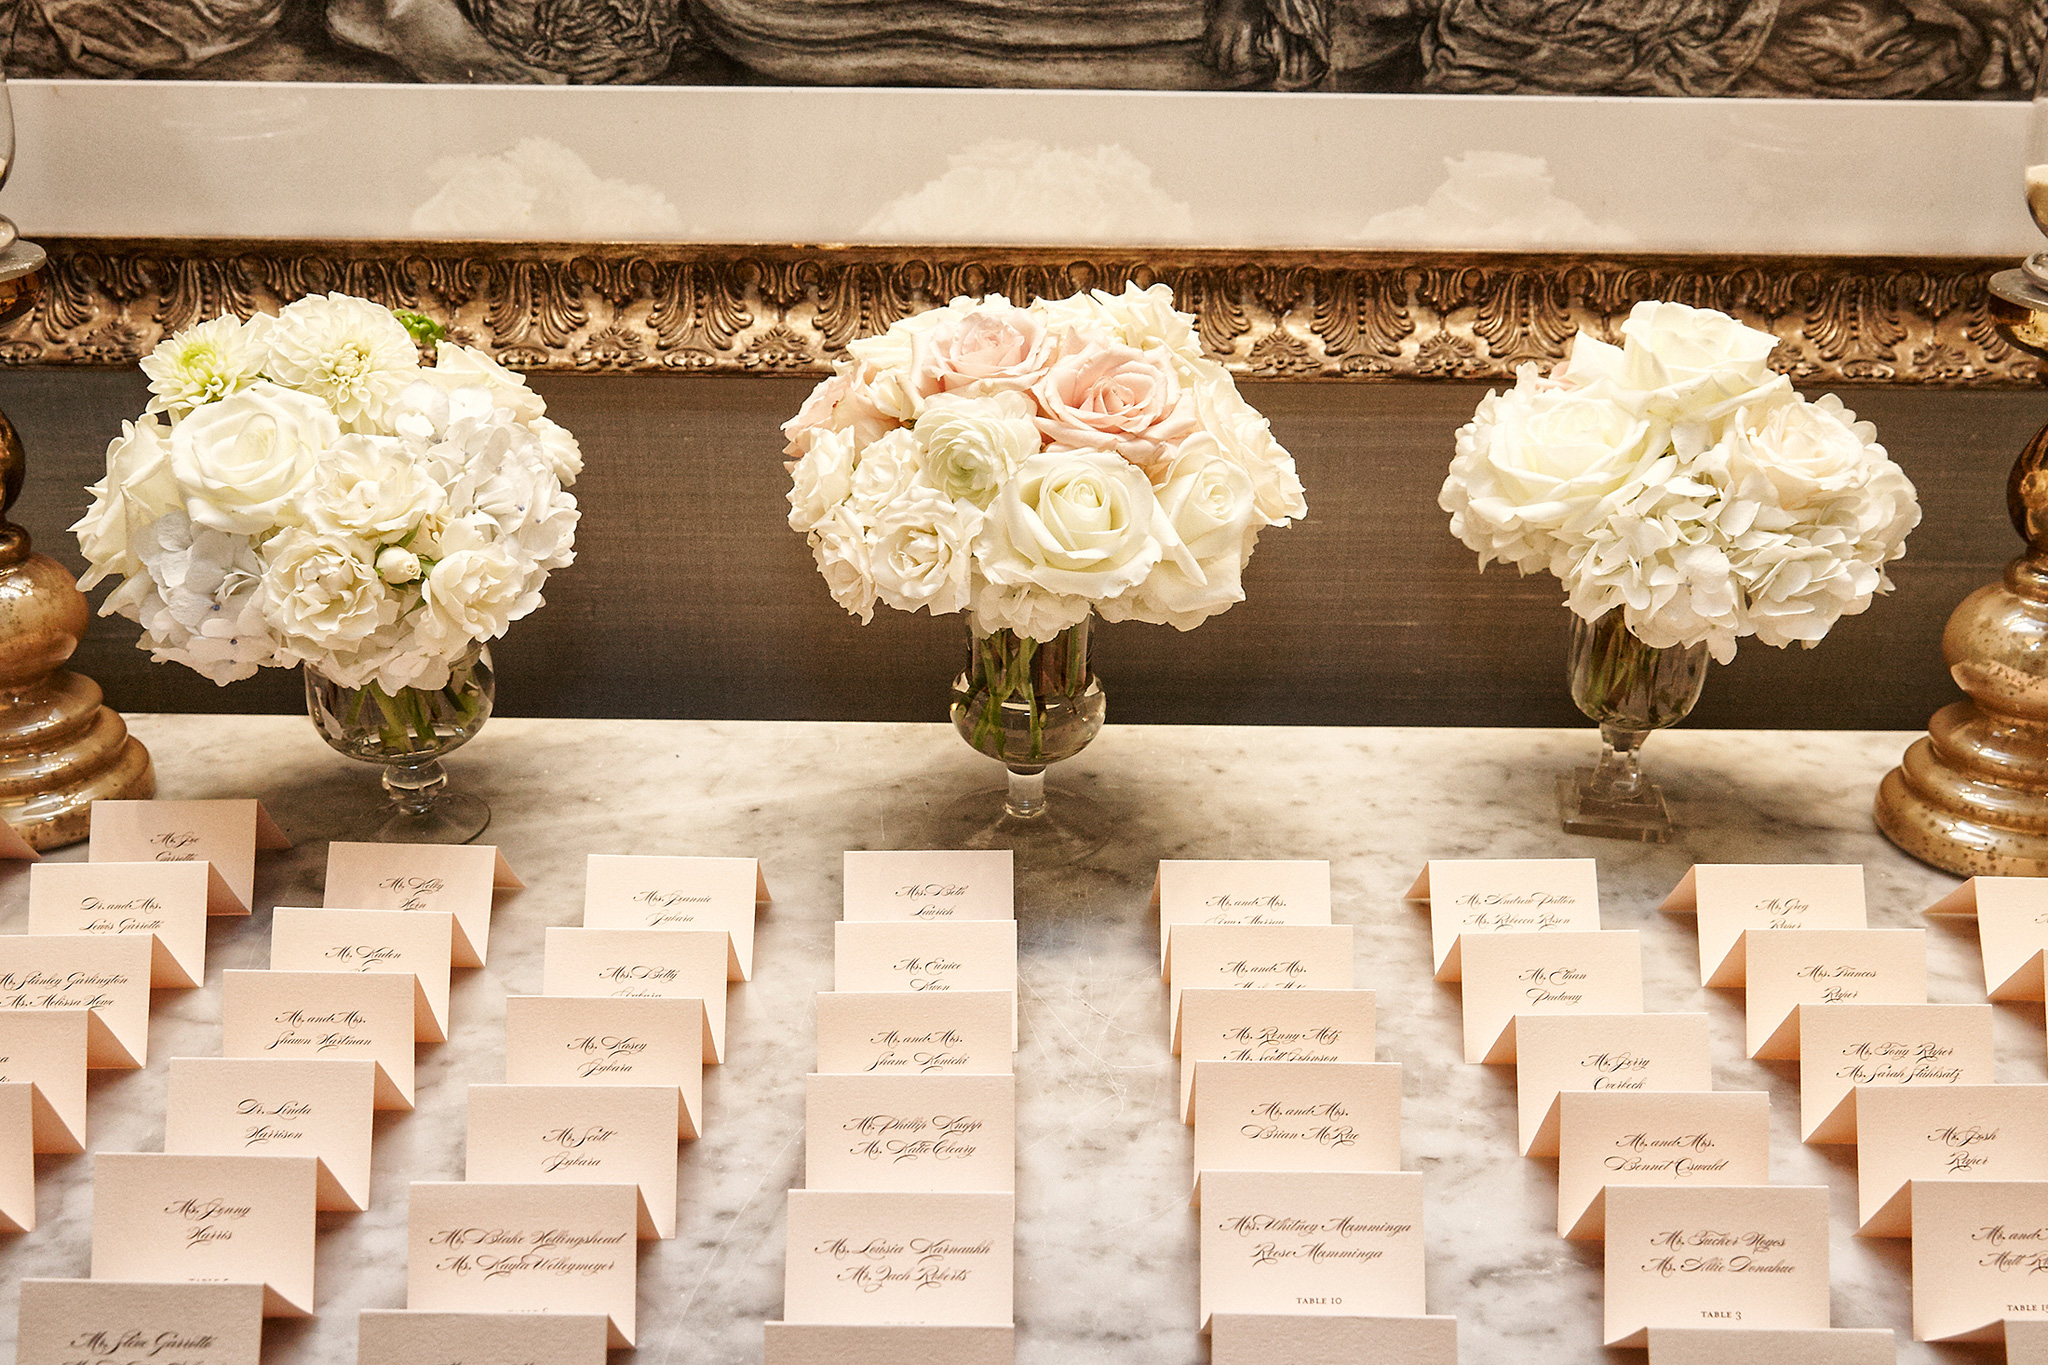 Escort cards on marble table at reception